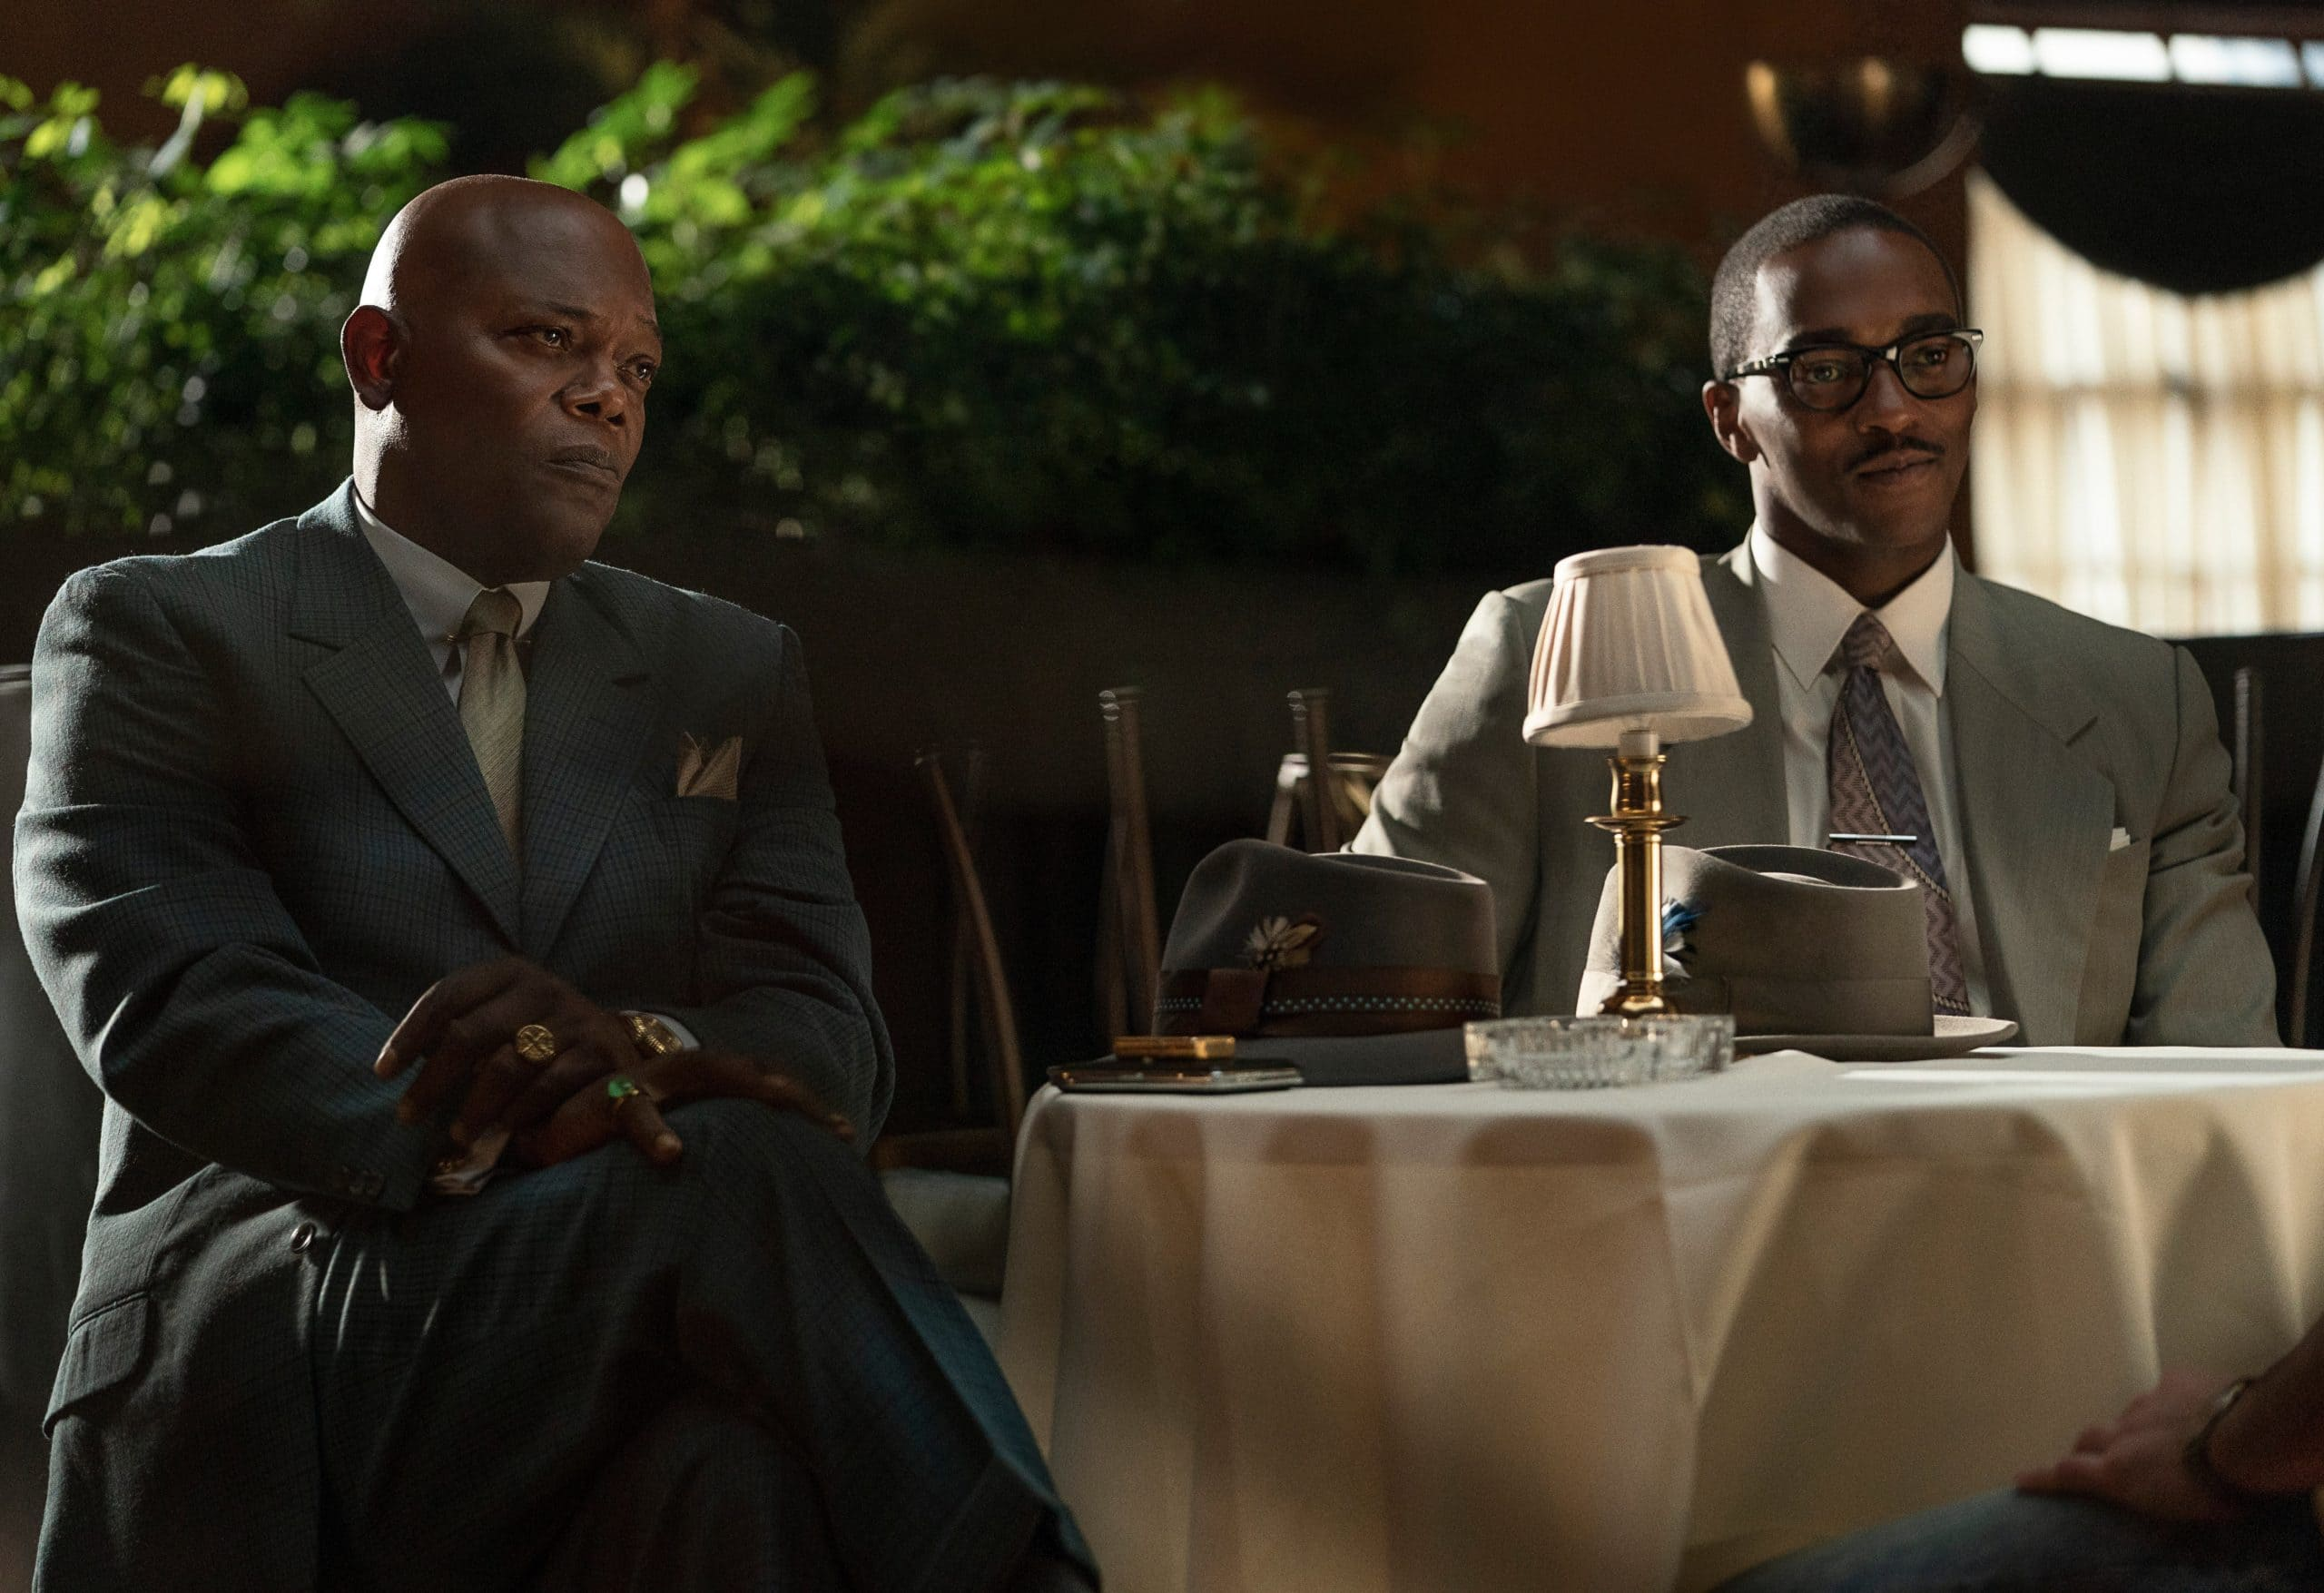 Samuel L. Jackson & Anthony Mackie in The Banker